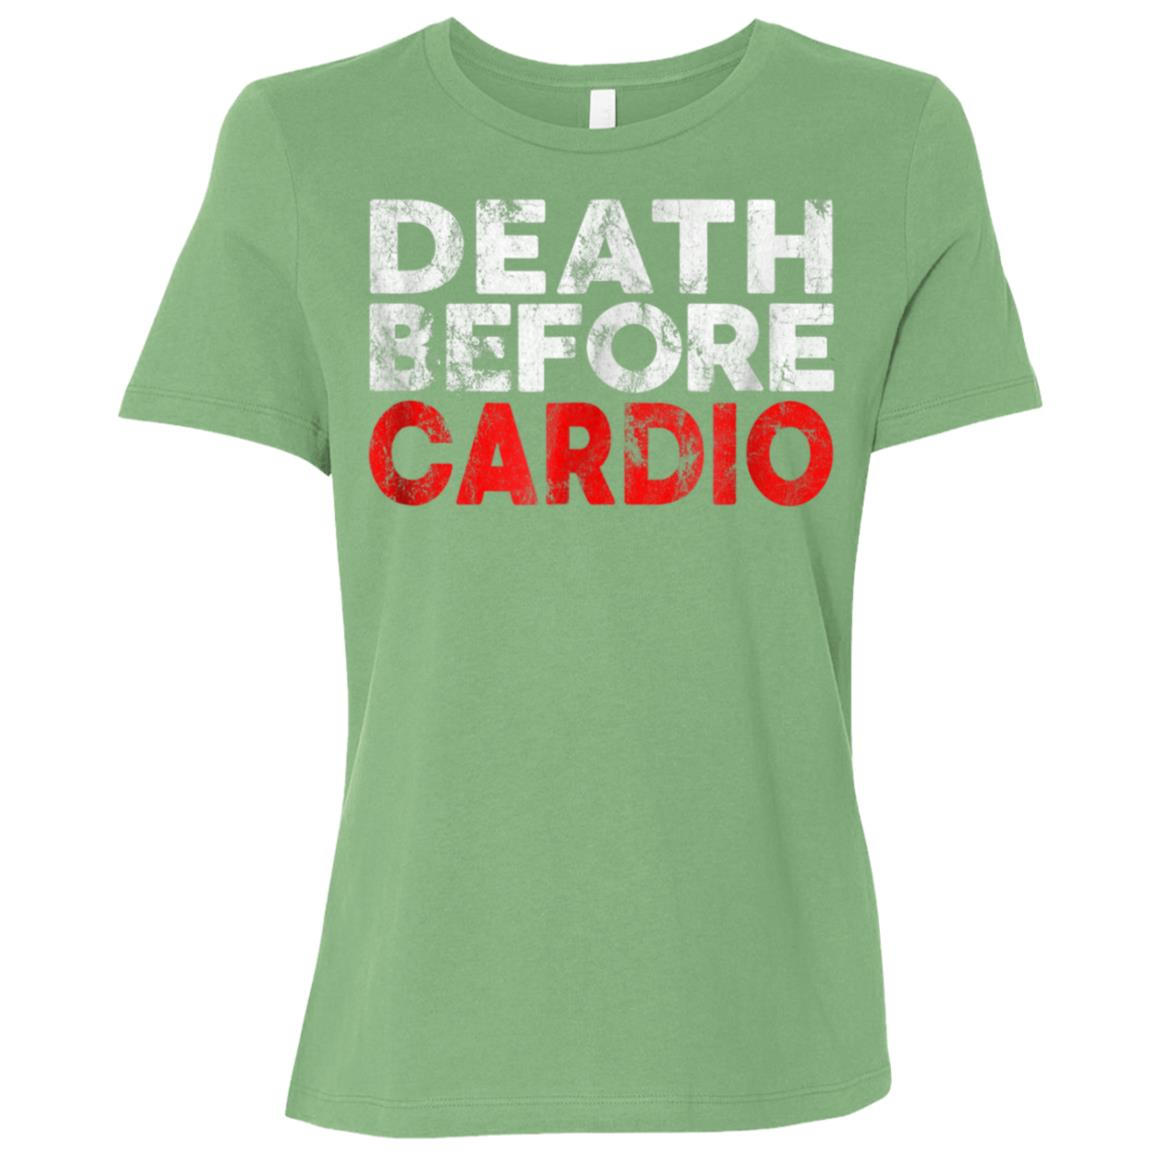 Death Before Cardio Funny Exercise Gym Running Late Women Short Sleeve T-Shirt